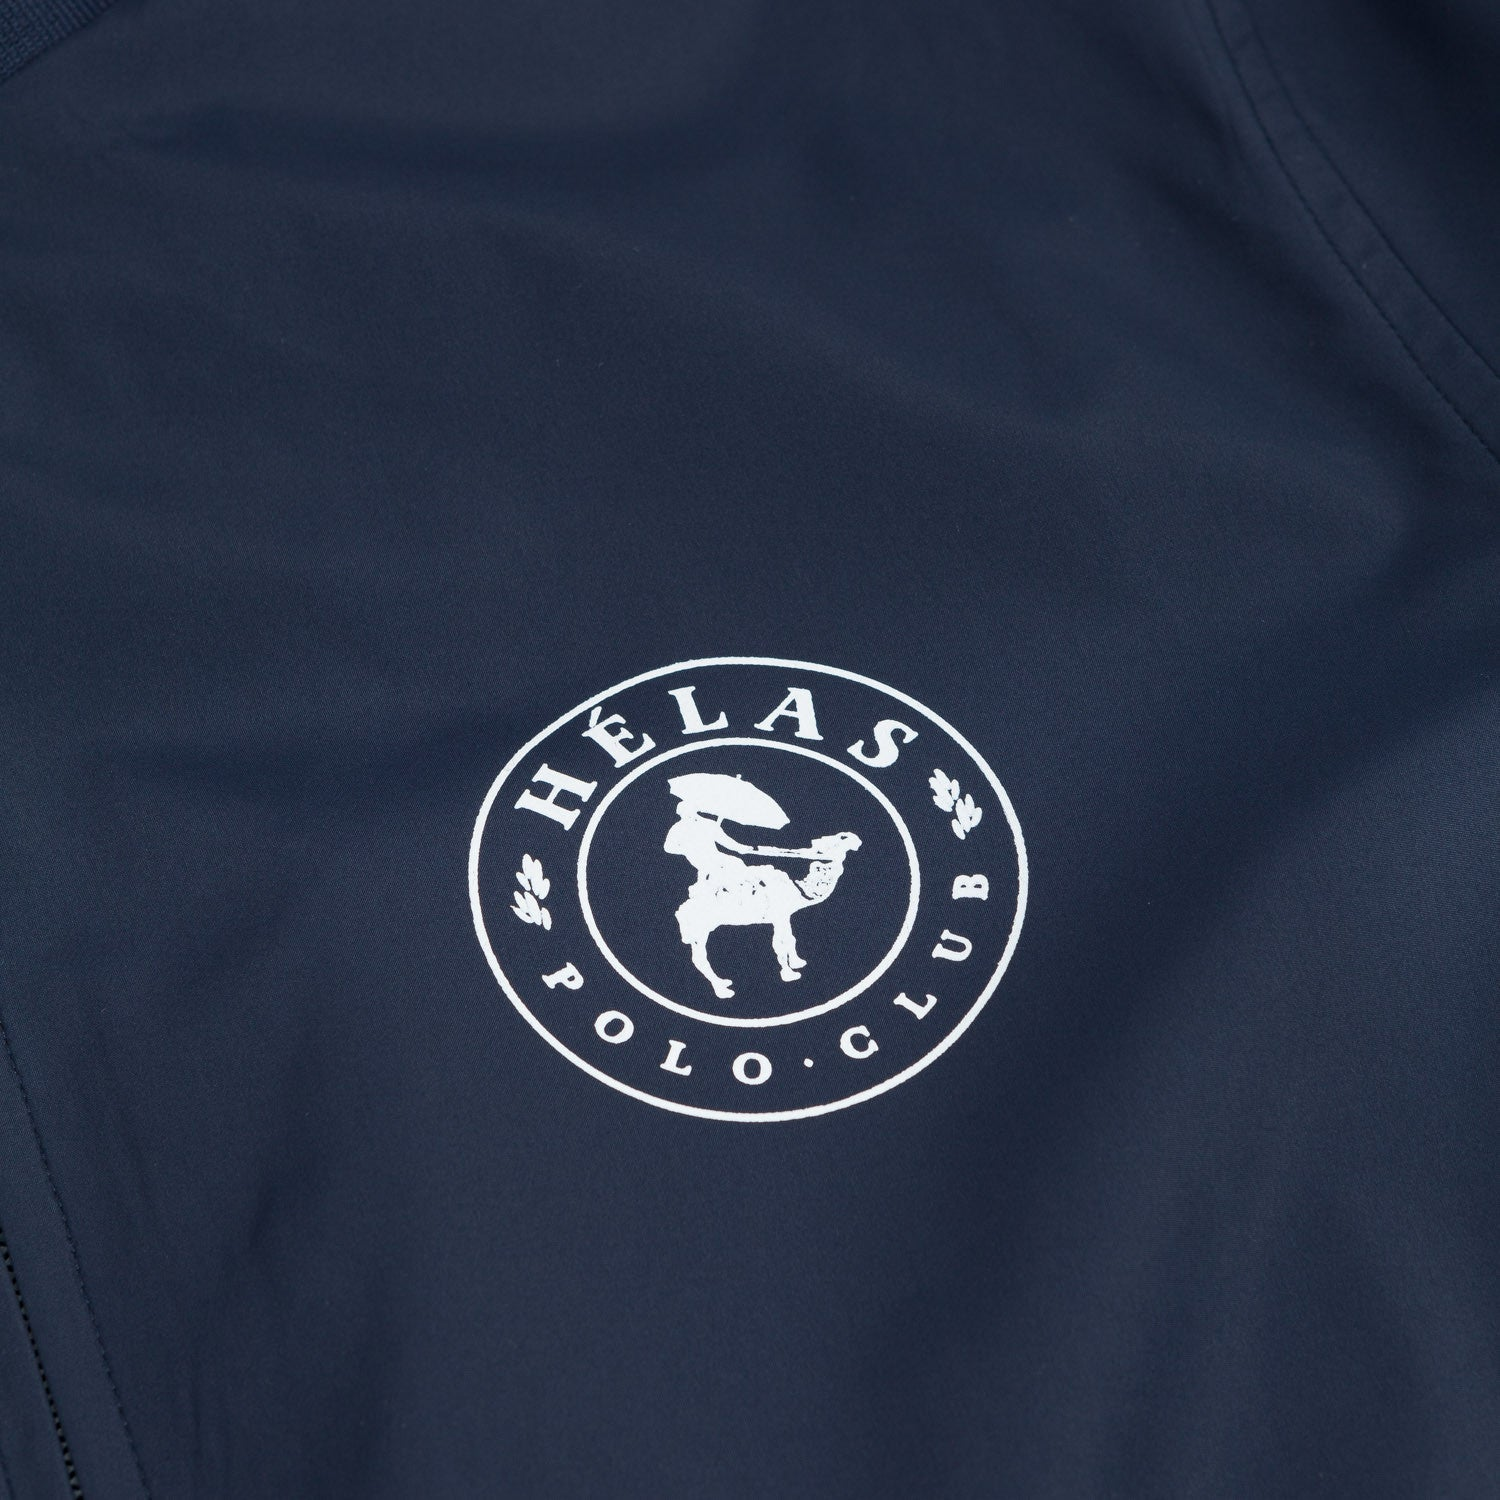 Helas Polo Club Jacket - Navy